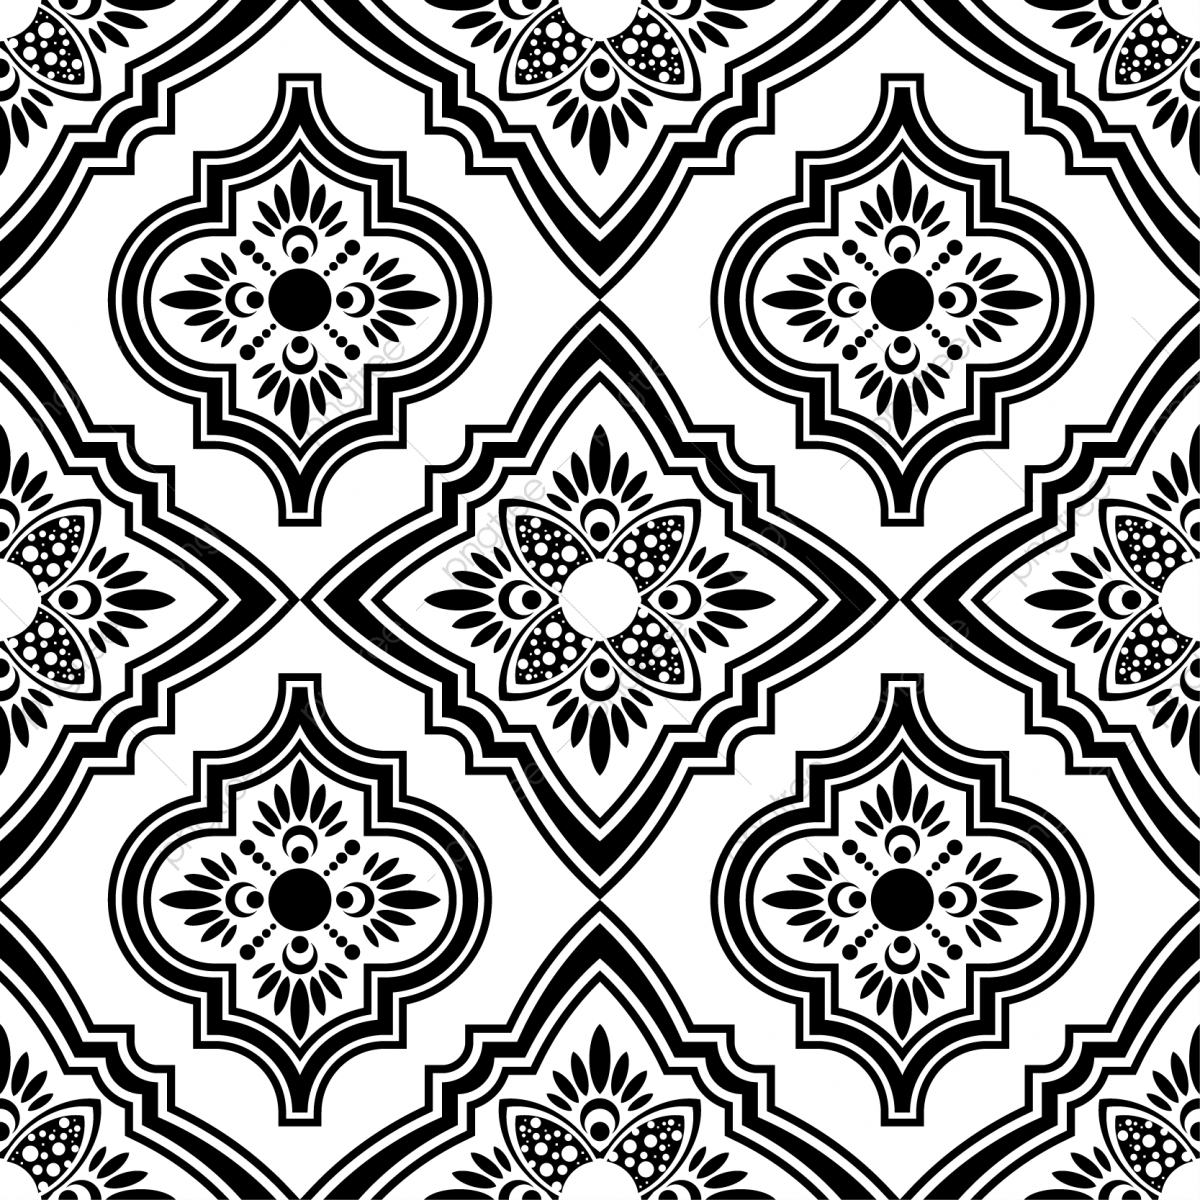 Persian ethnic seamless pattern. Free clipart turkish tile background black and white